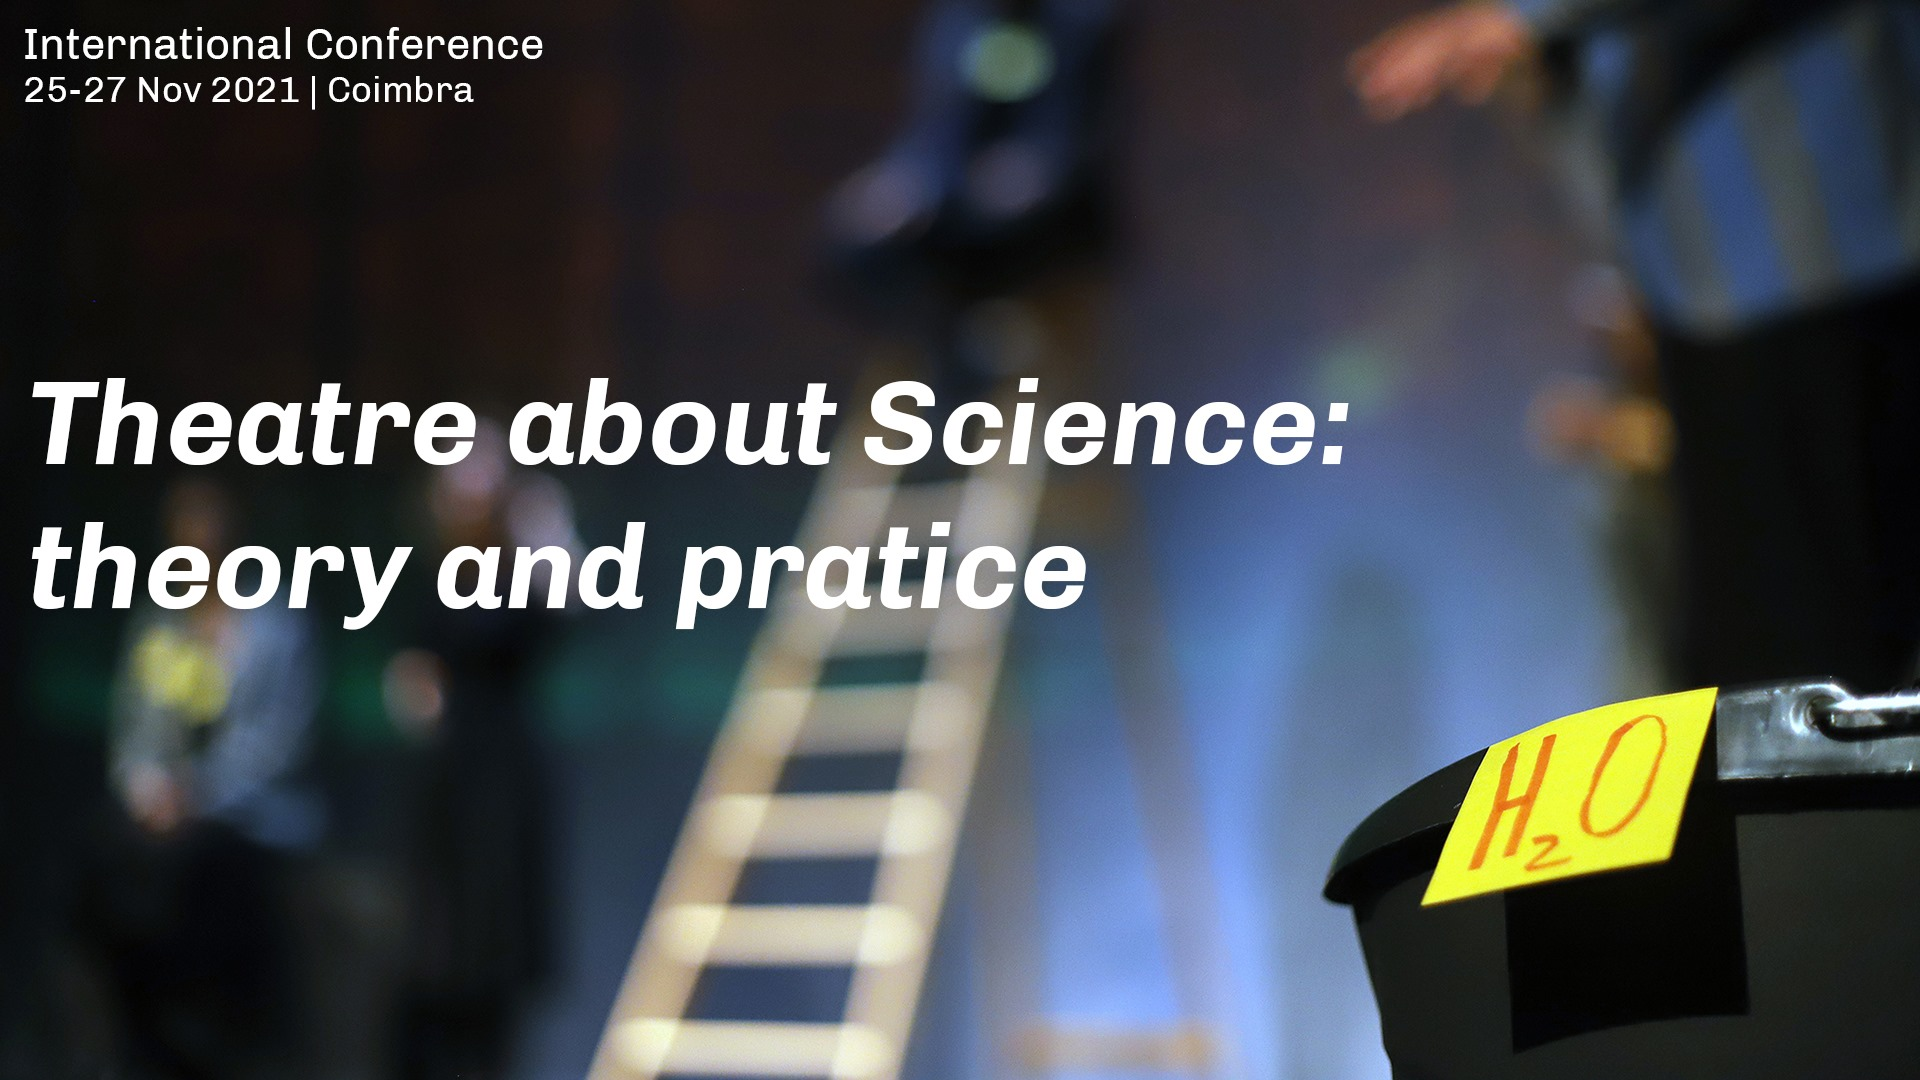 International Conference | Theatre about Science